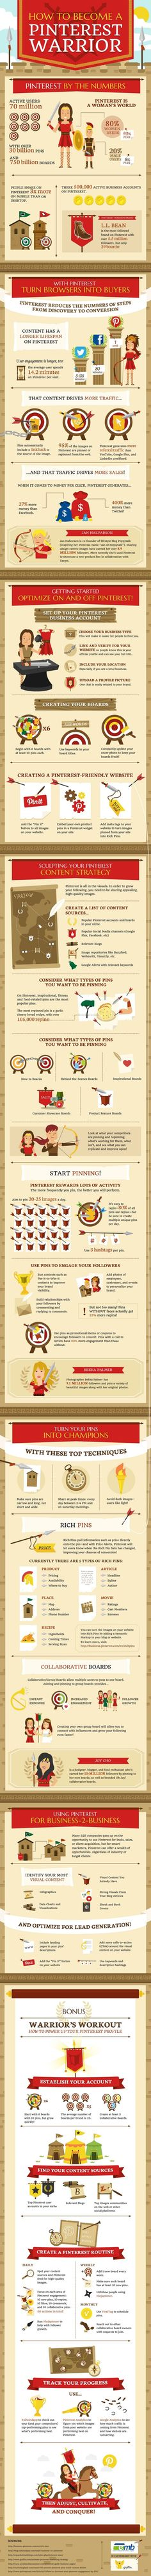 Social Media - How to Become a Pinterest Warrior and Vanquish the Competition [Infographic] : MarketingProfs Article